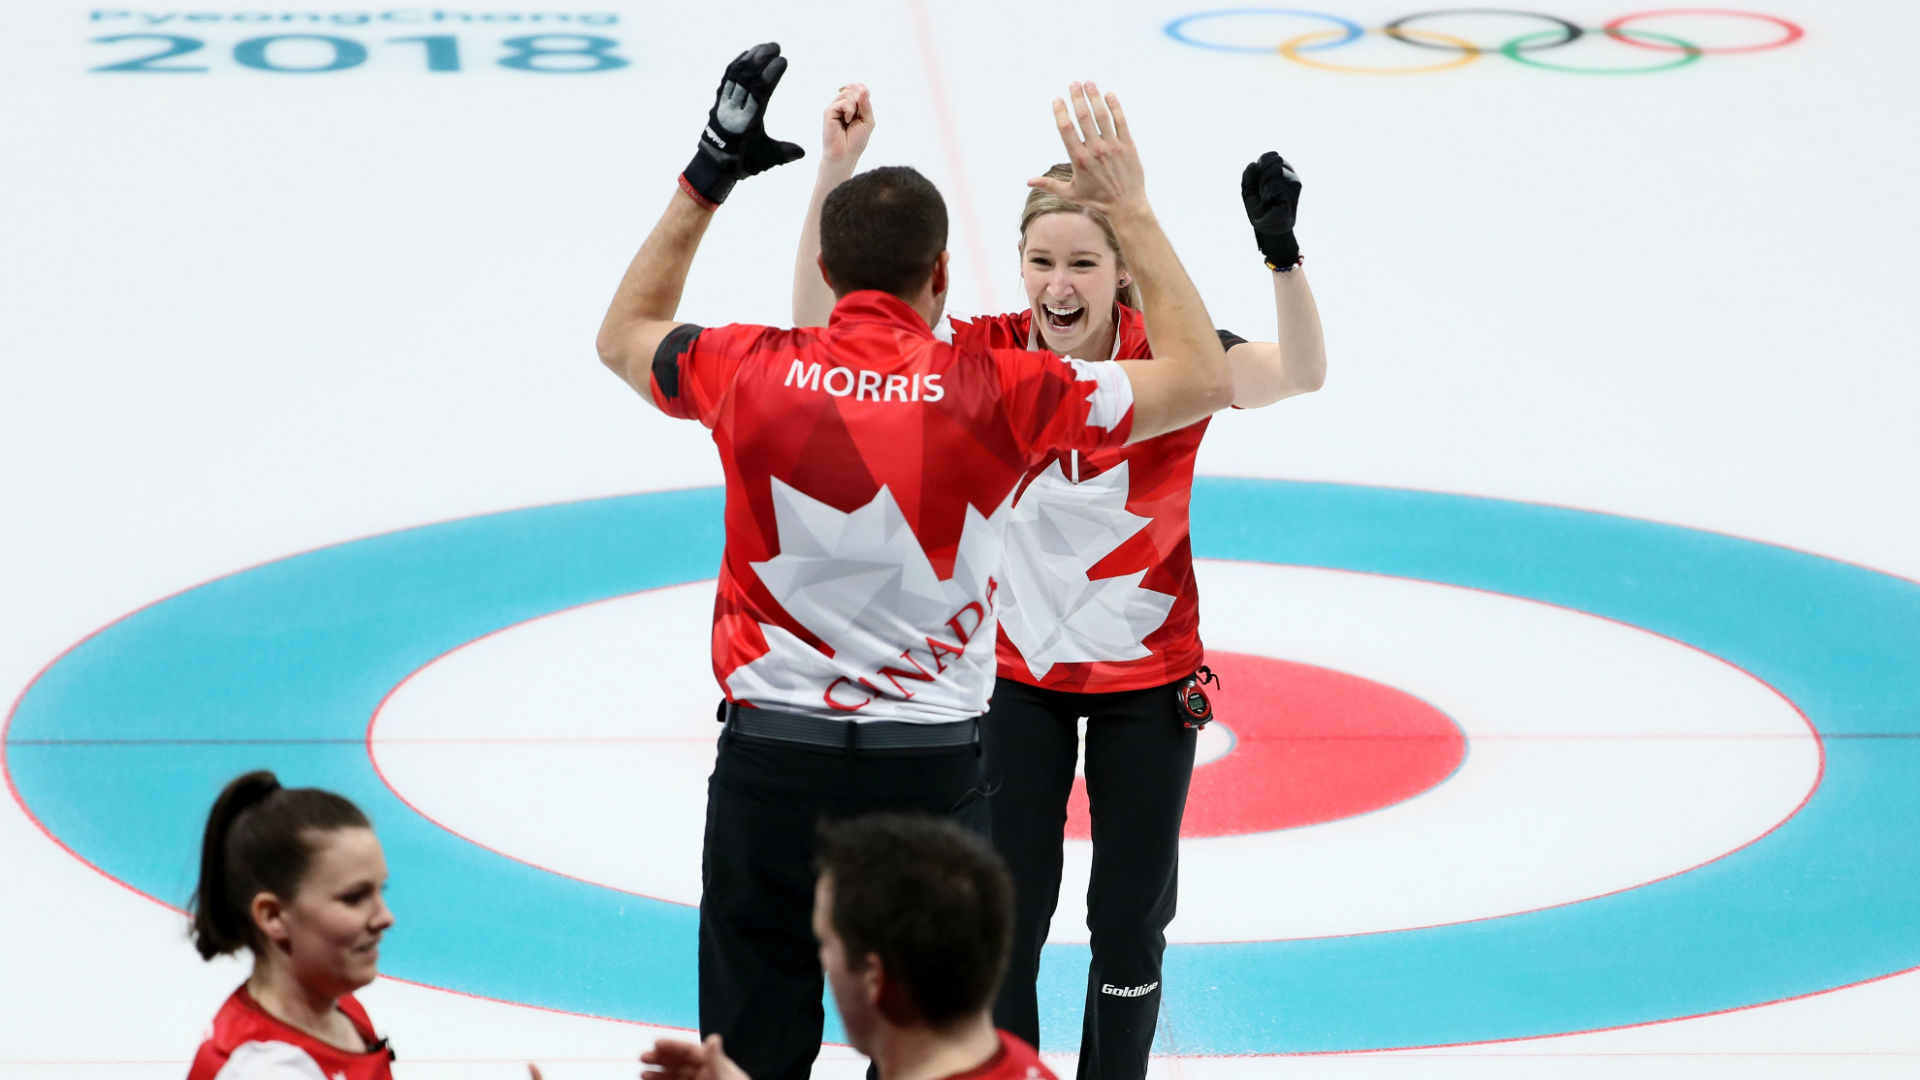 Canada's Lawes, Morris win mixed doubles curling gold